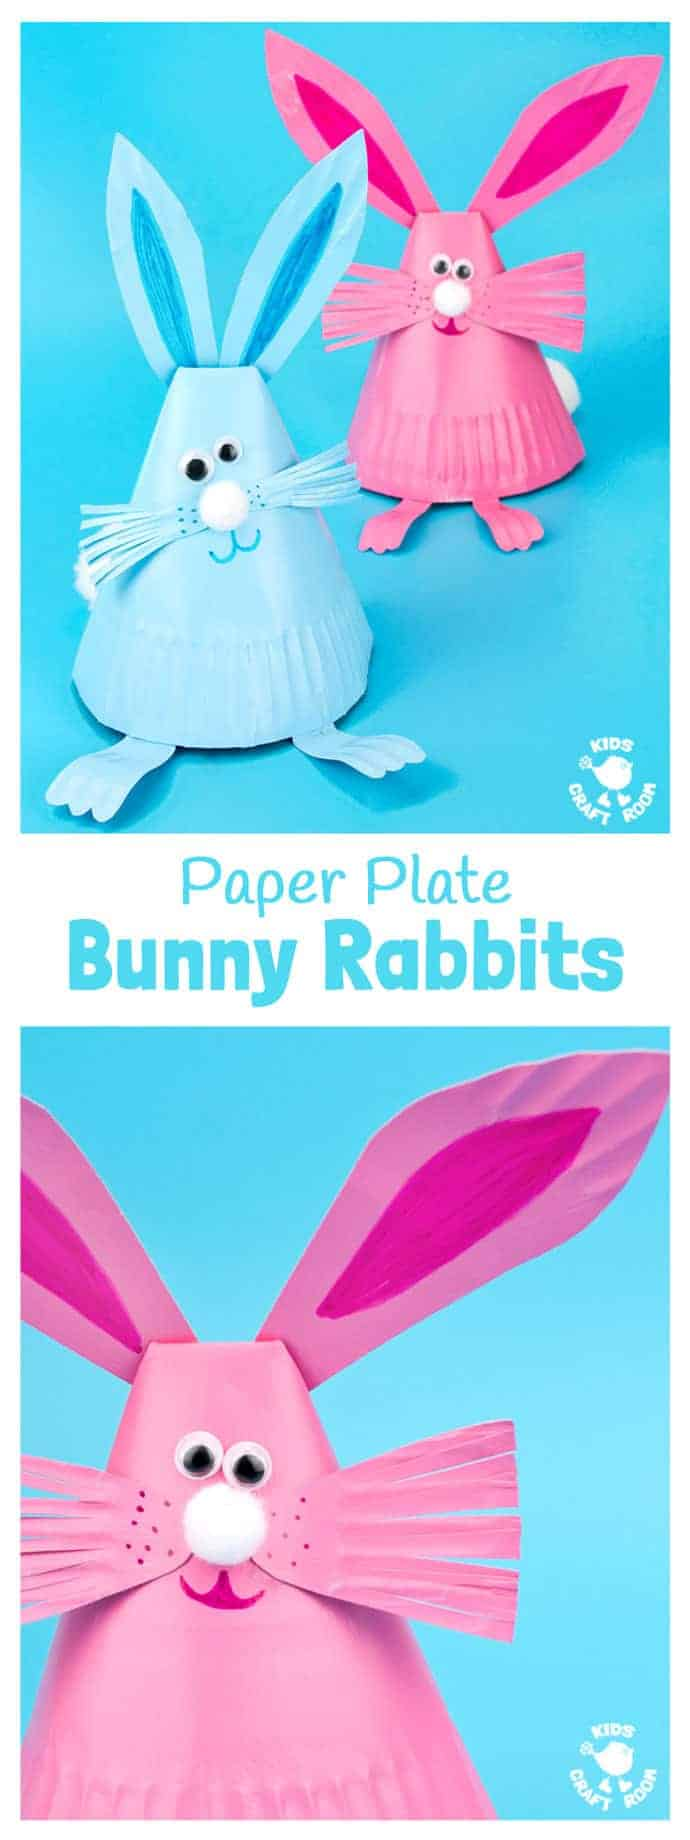 This Paper Plate Rabbit Craft is a super Easter craft or Spring craft for kids. Whether you make them as an Easter bunny craft or for everyday, these cute bouncing bunnies are so much fun! #Easter #eastercrafts #kidscrafts #rabbits #bunny #easterbunny #paperplatecrafts #preschoolcrafts #craftsforkids #kidscraftroom #springcrafts #paperplates